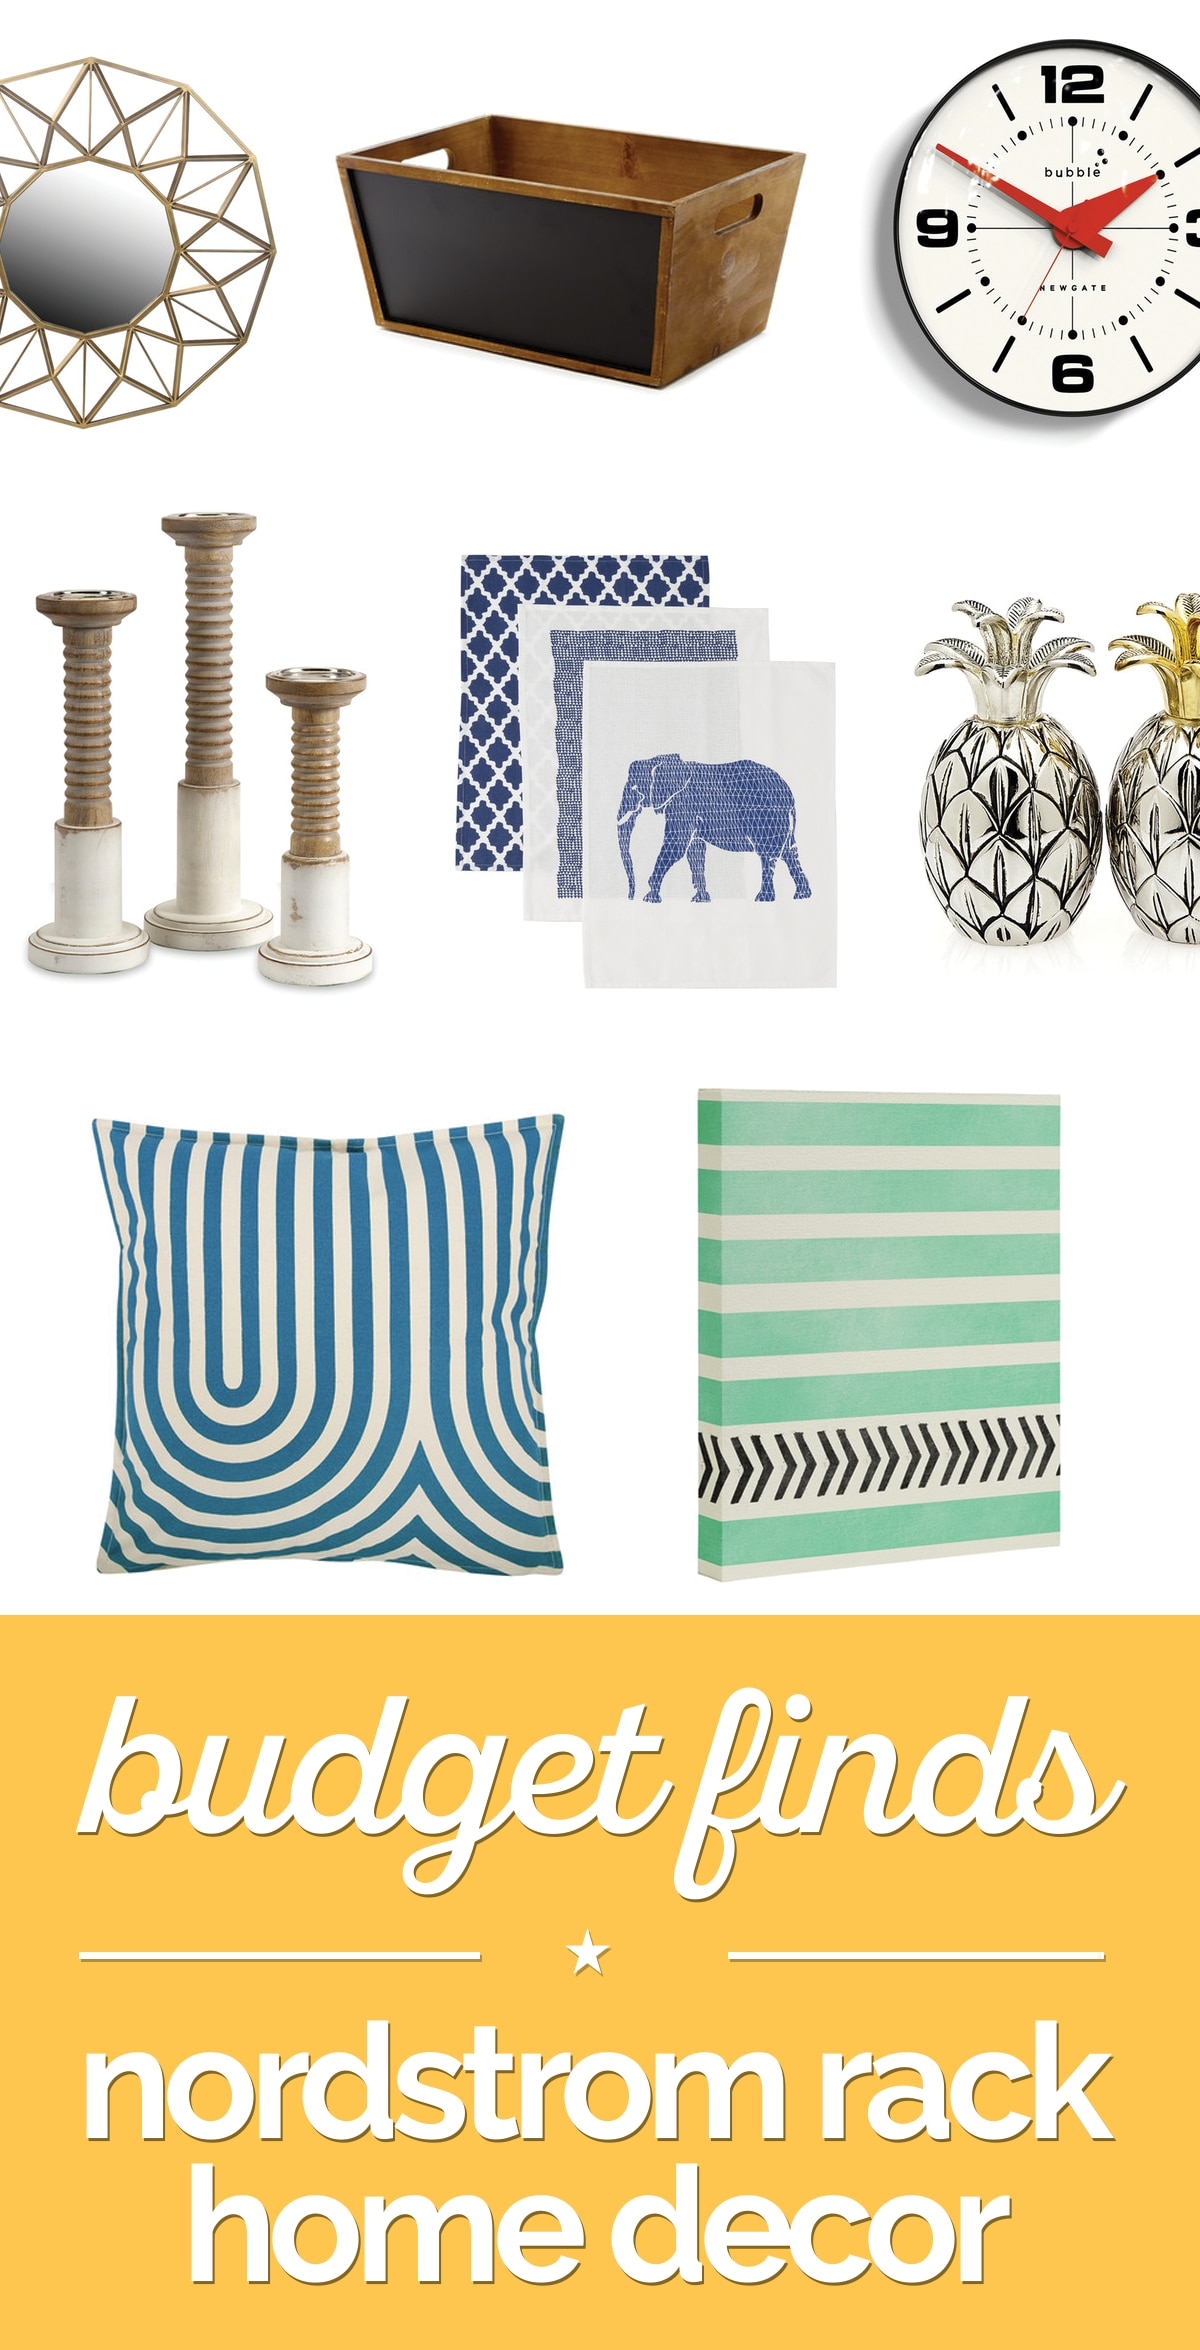 Budget Finds: Nordstrom Rack Home Decor | thegoodstuff